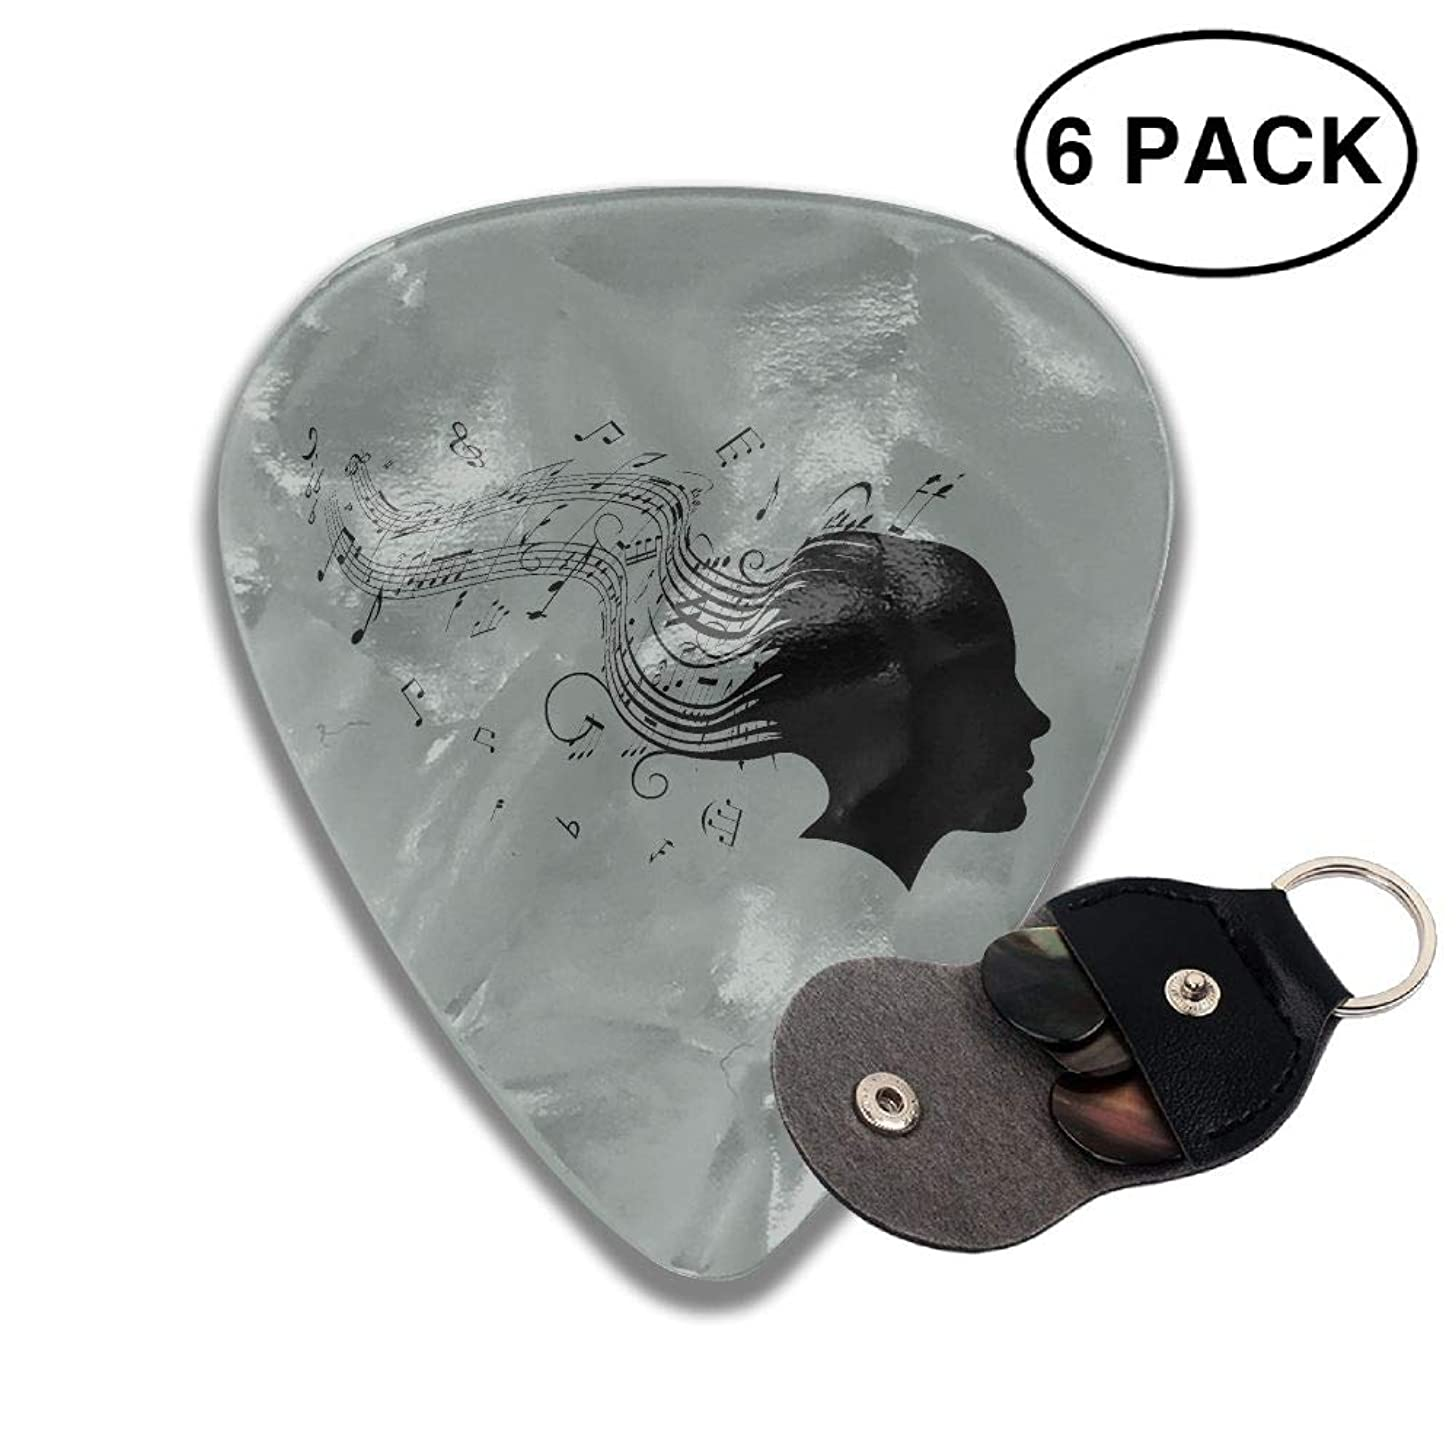 Houde Ankang Musical Notes 6 Pieces Personalized Guitar Picks.